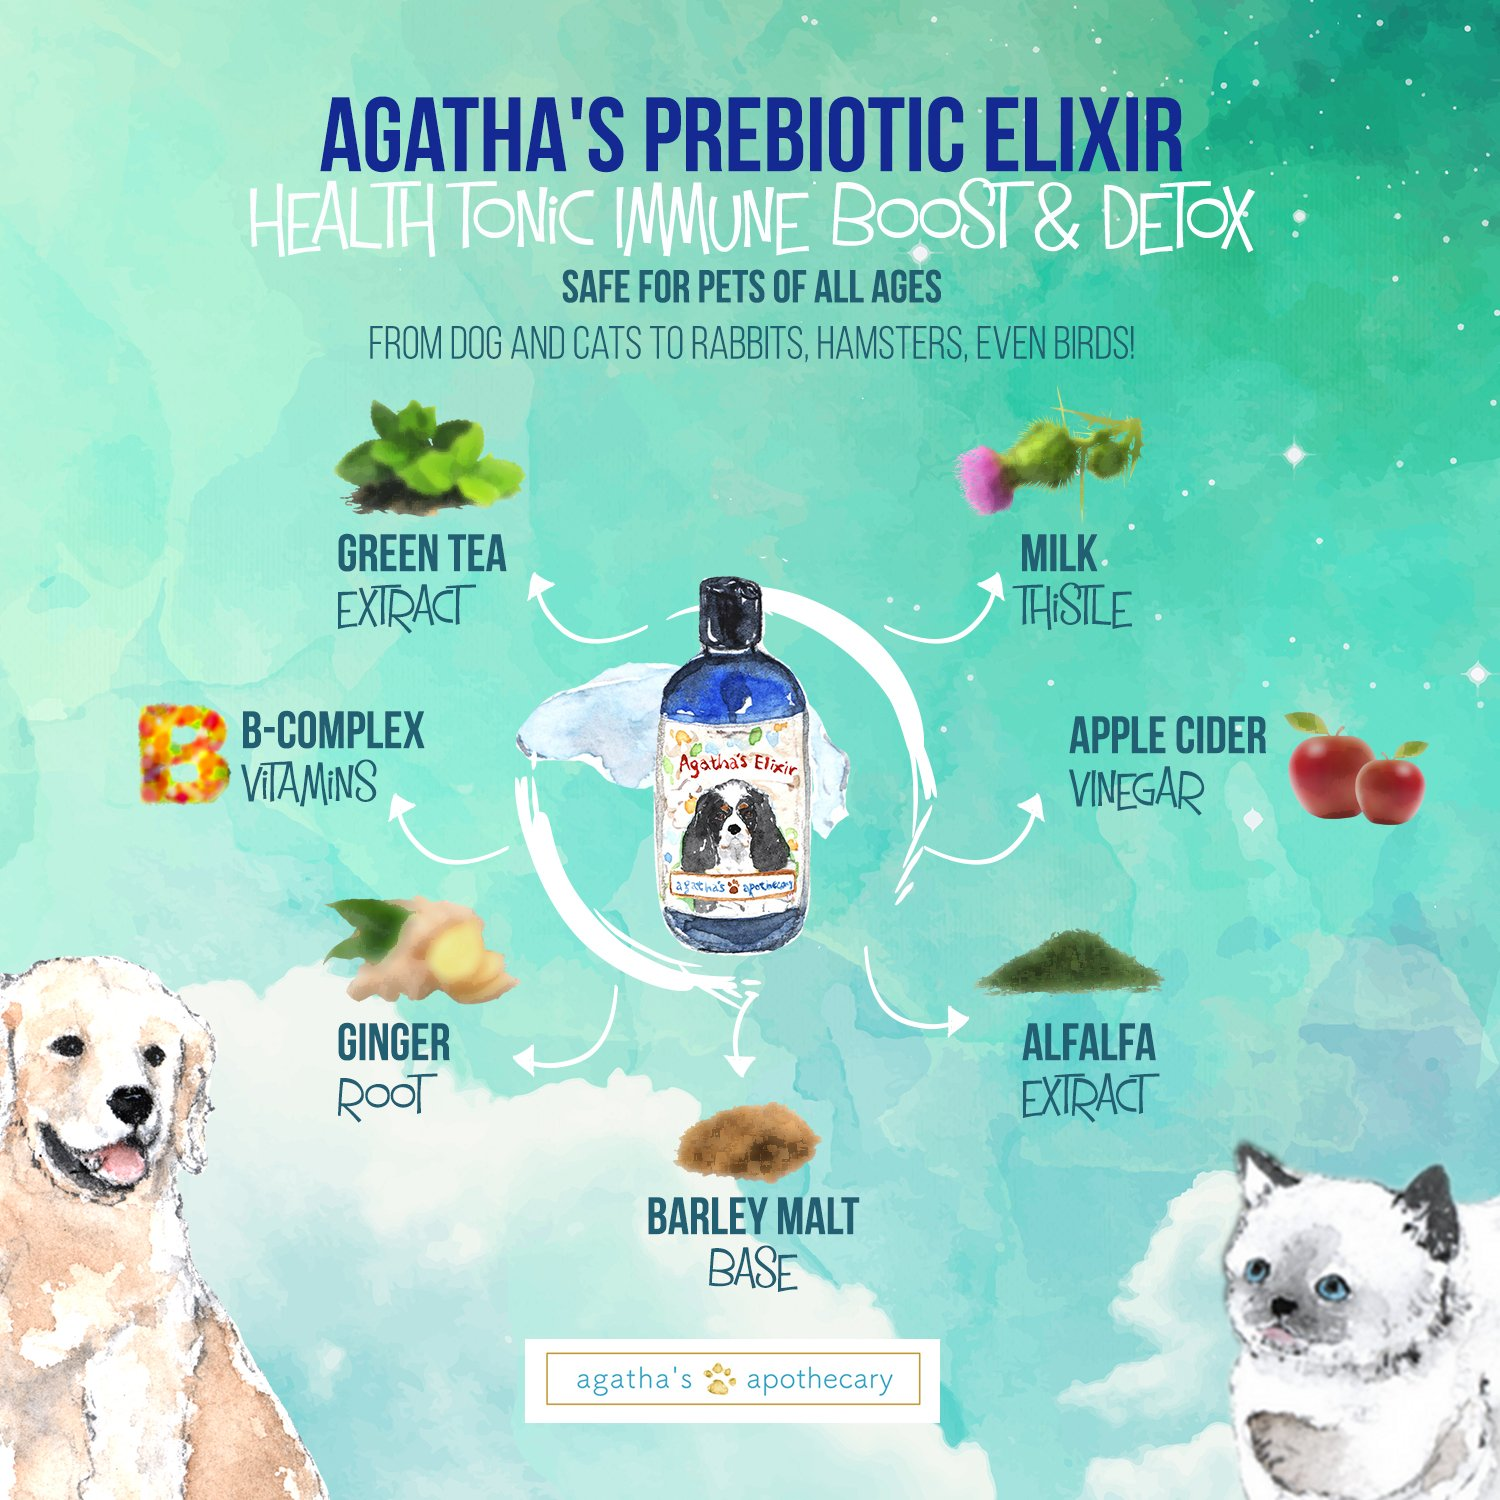 Agatha's Elixir Prebiotics for Dogs ● Appetite Stimulant for Picky Eaters and Senior Pets ● Green Tea & Milk Thistle Boost Immune System, Liver Detoxifier by Agatha's Pet Wellness (Image #8)